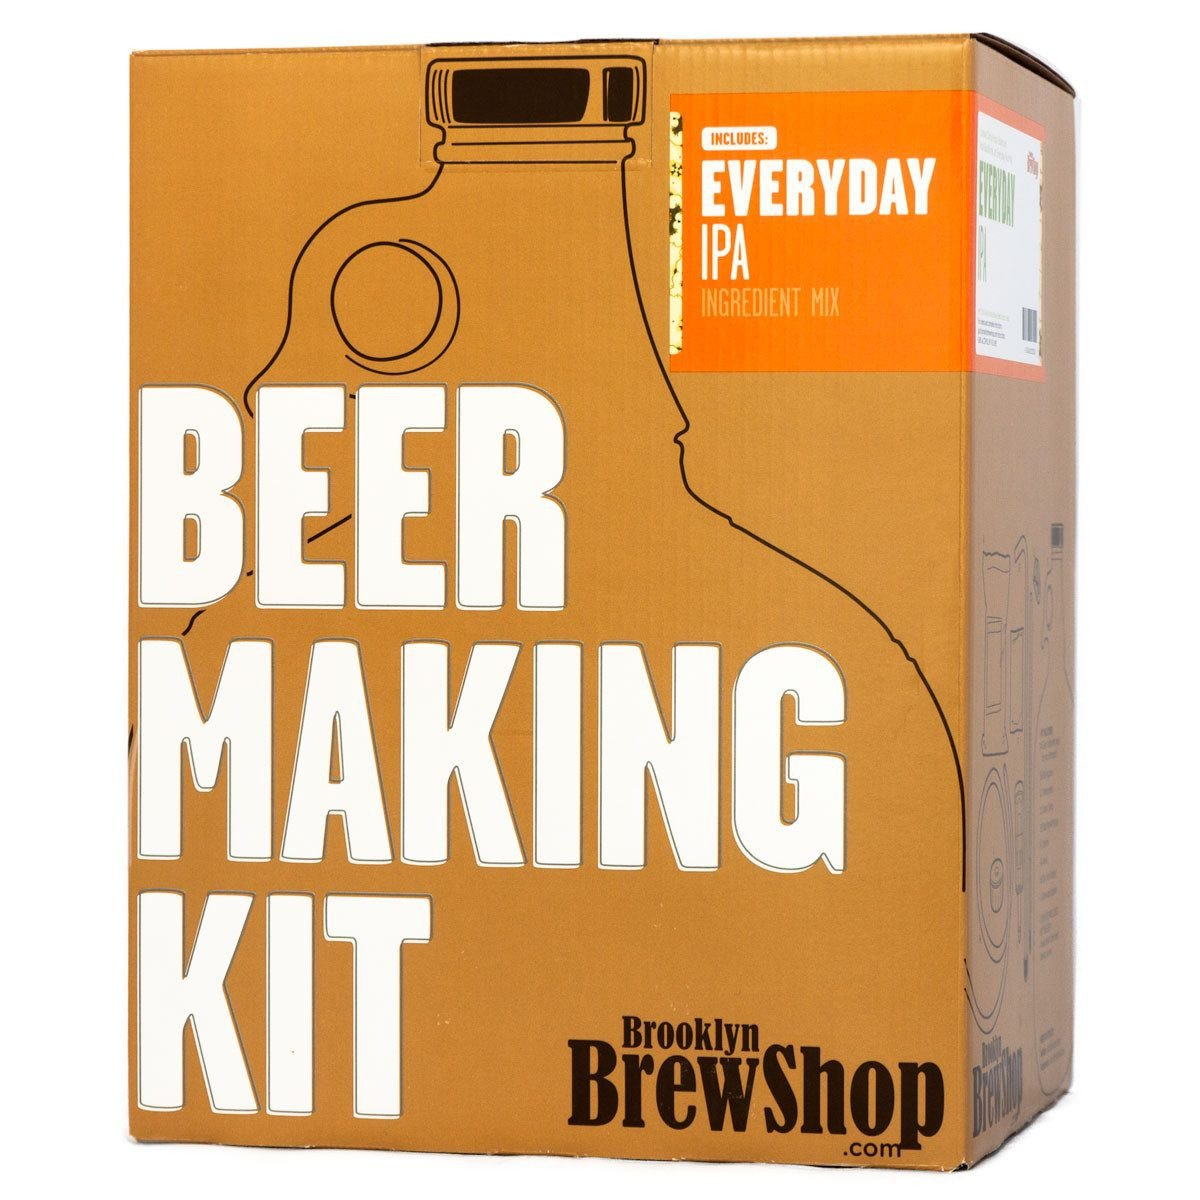 Brooklyn Brew Shop Everyday IPA Beer Making Kit: All-Grain Starter Set With Reusable Glass Fermenter, Brew Equipment, Ingredients (Malted Barley, Hops, Yeast) Perfect For Brewing Craft Beer At Home by Brooklyn Brew Shop